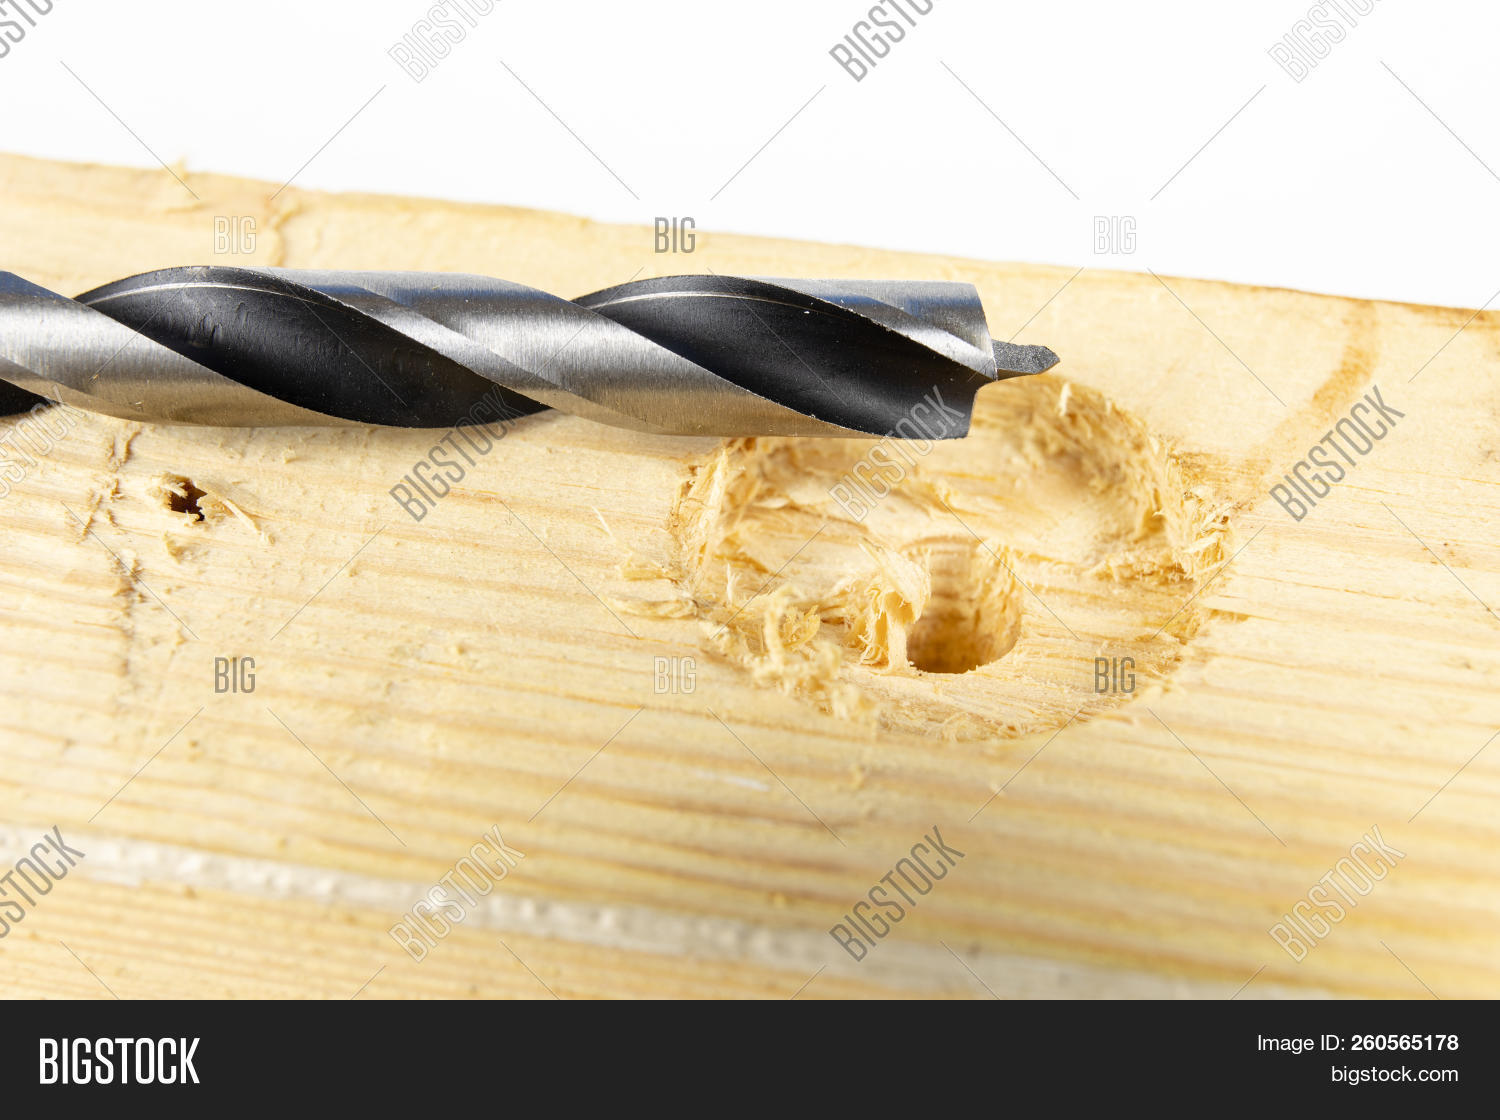 Drilling Holes Wood Image Photo Free Trial Bigstock